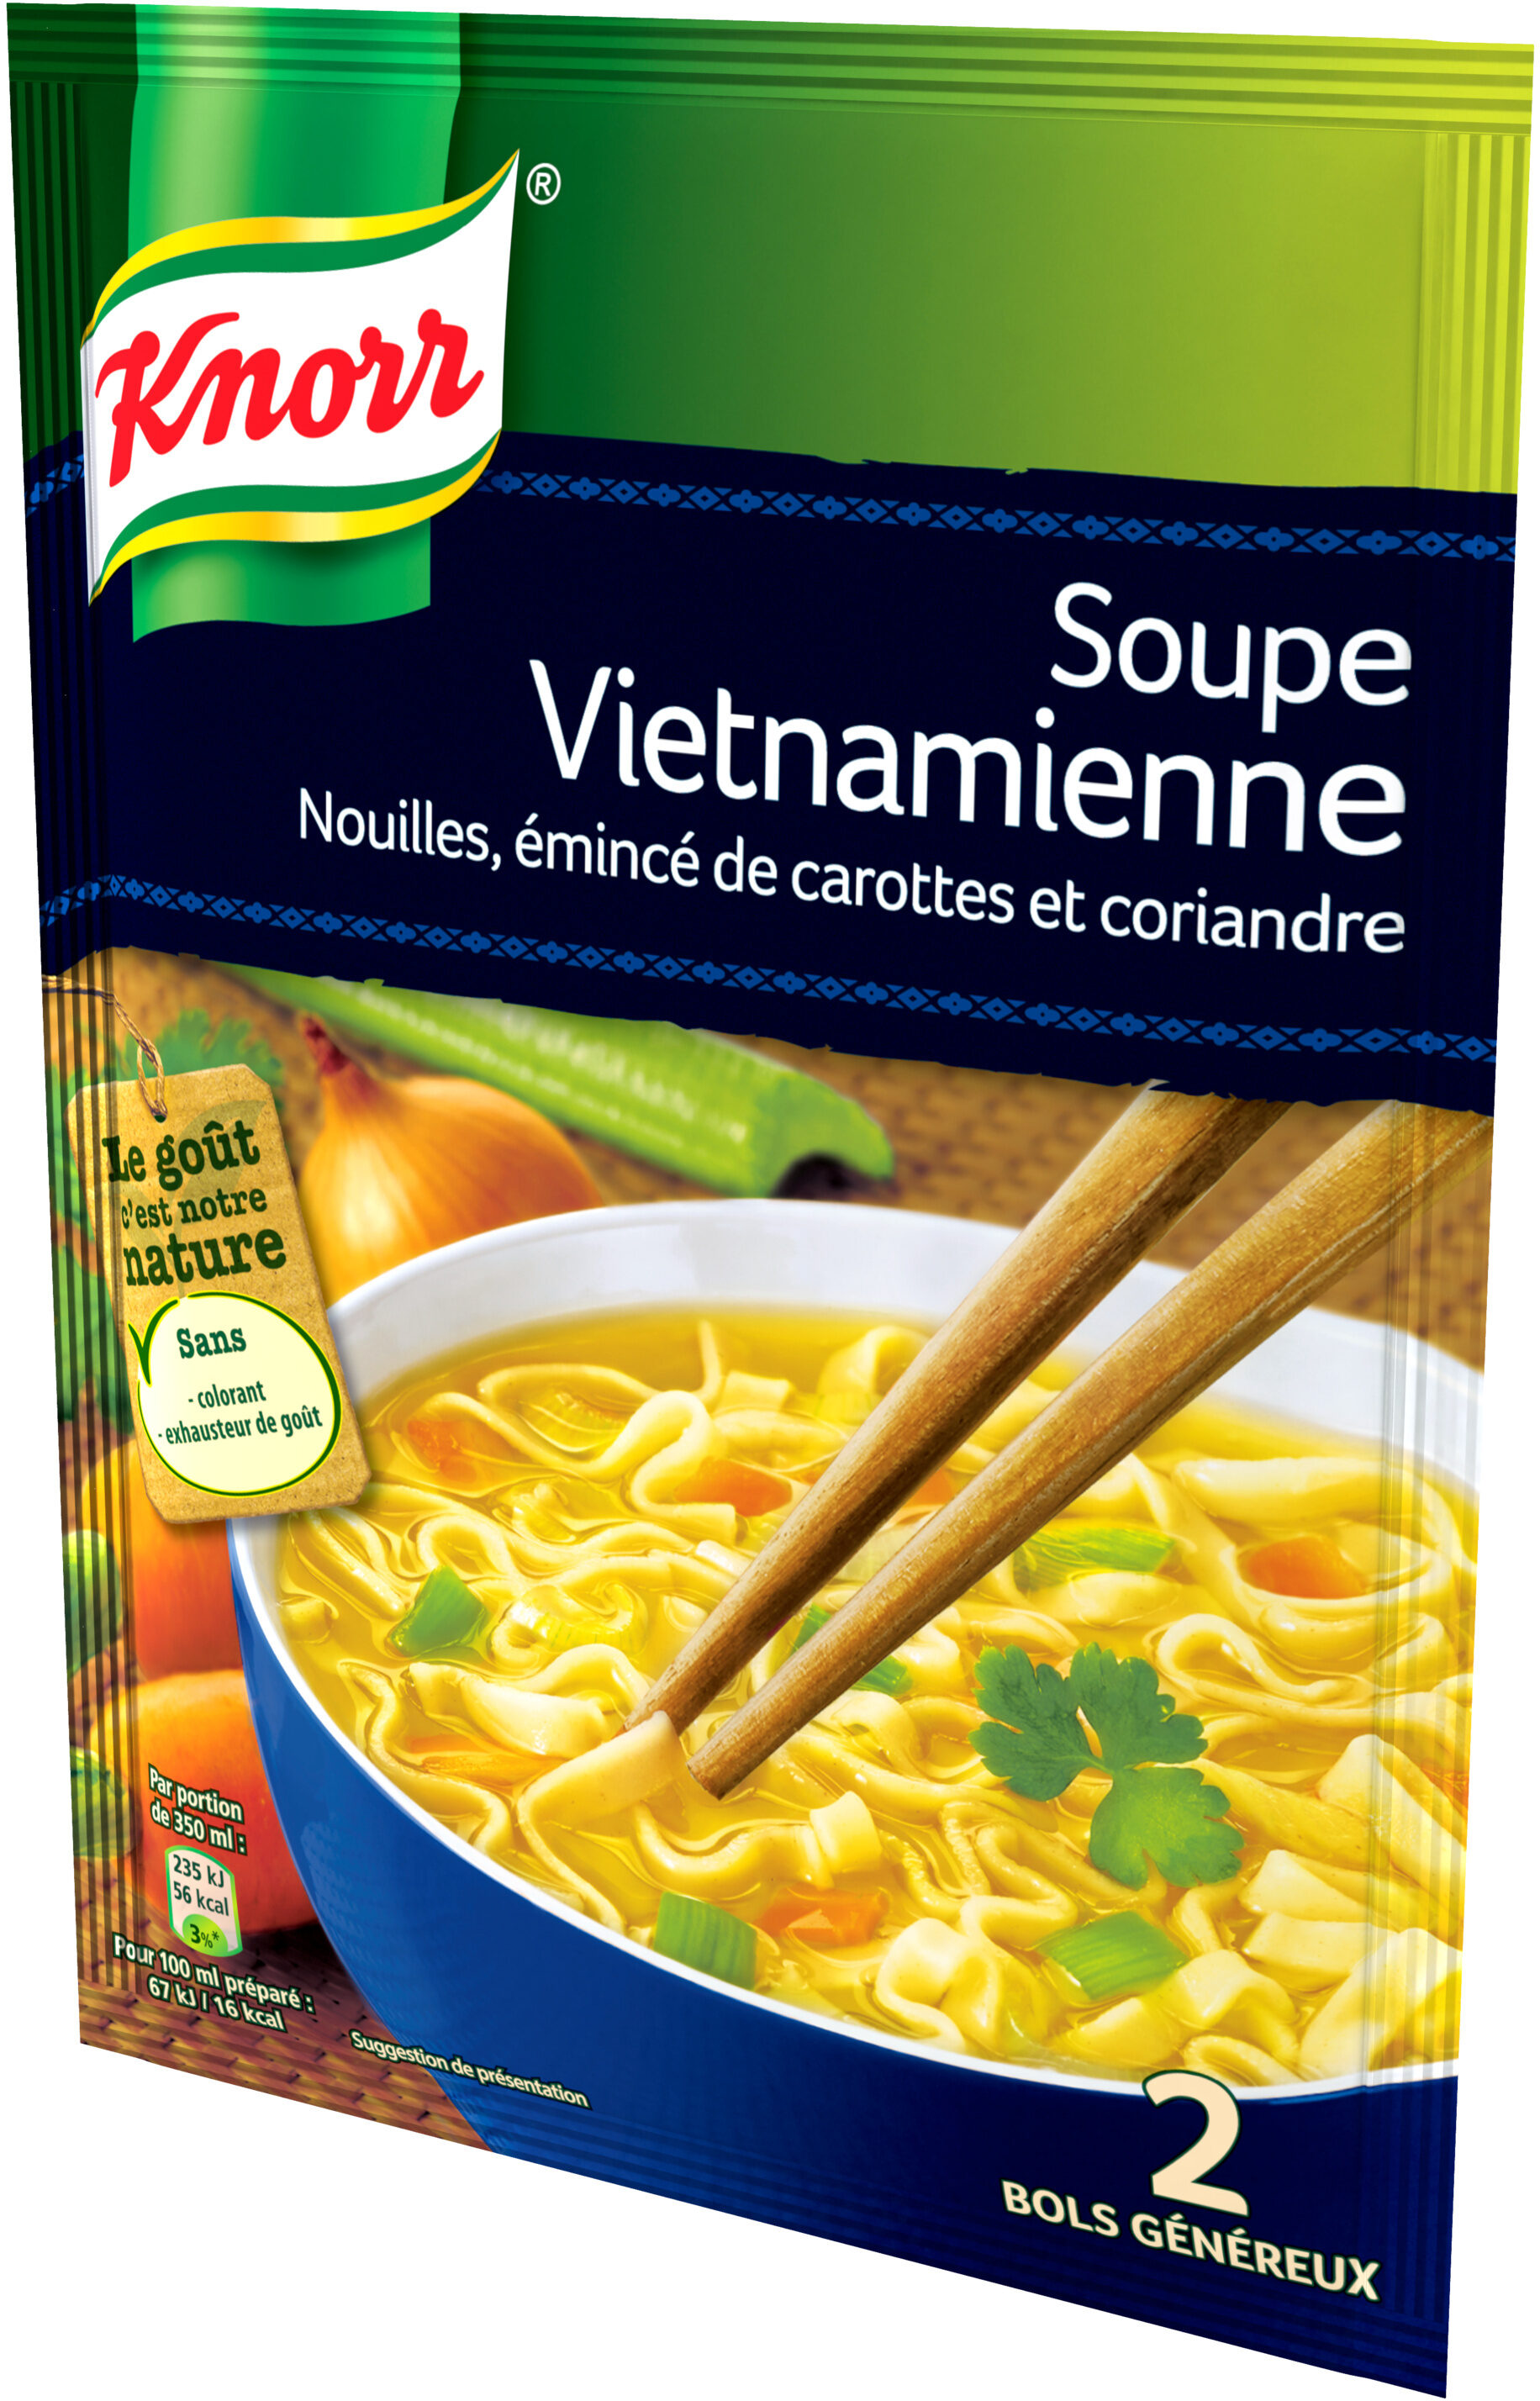 Knorr Soupe Vietnamienne 39g 2 Portions - Product - fr